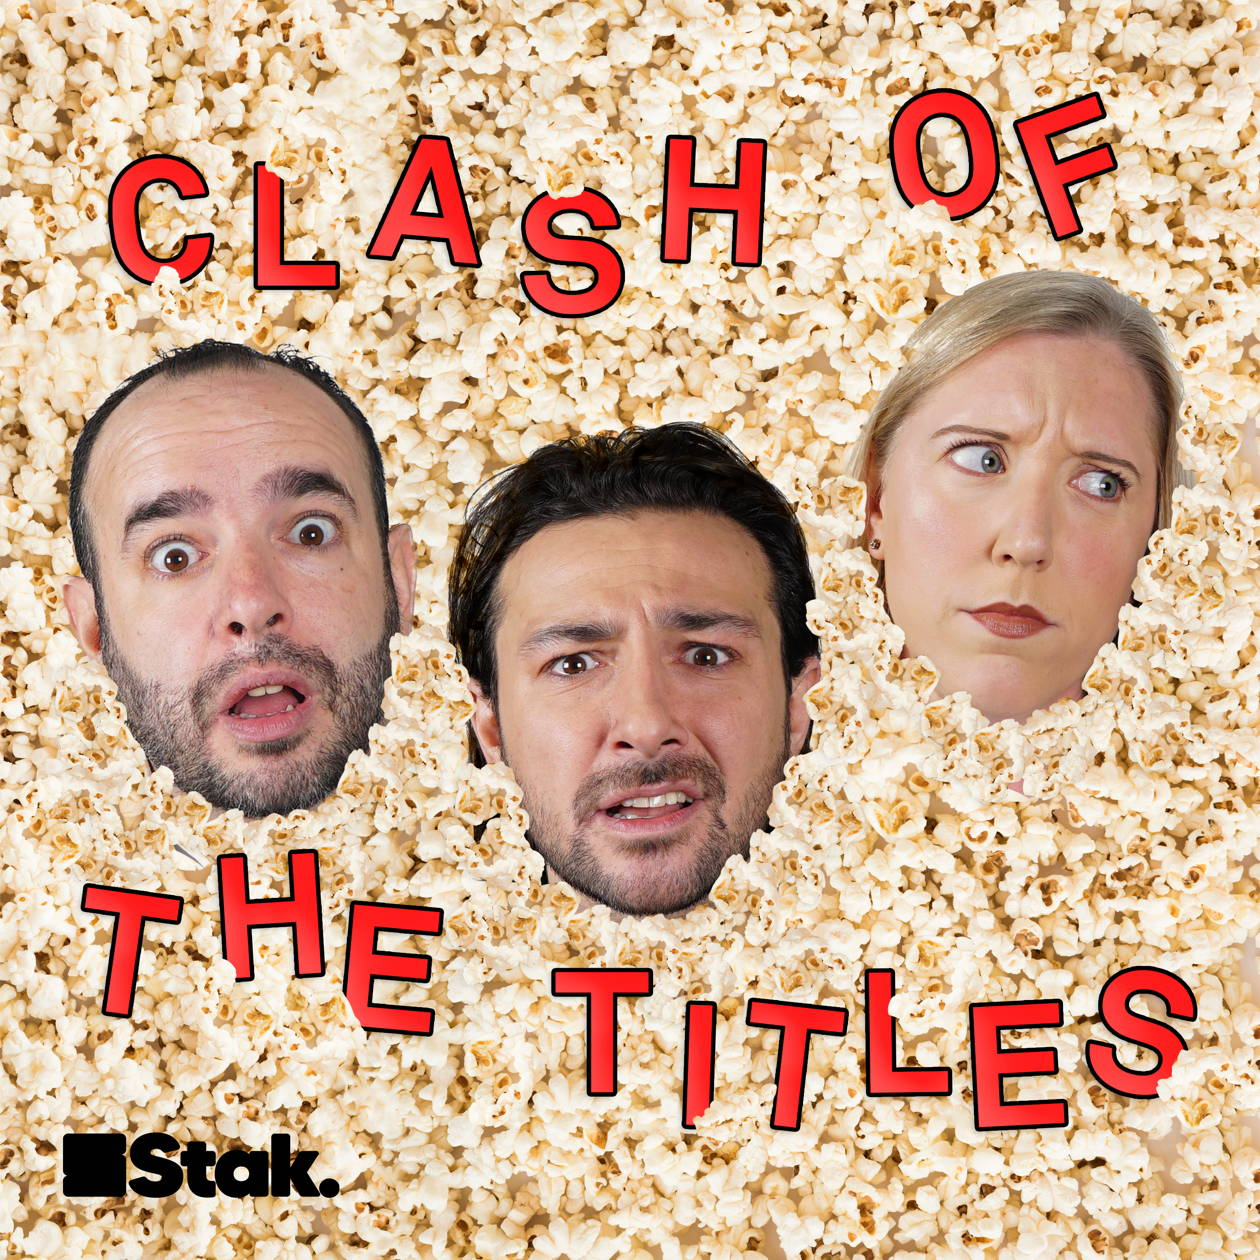 Artwork for the Clash Of The Titles podcast.